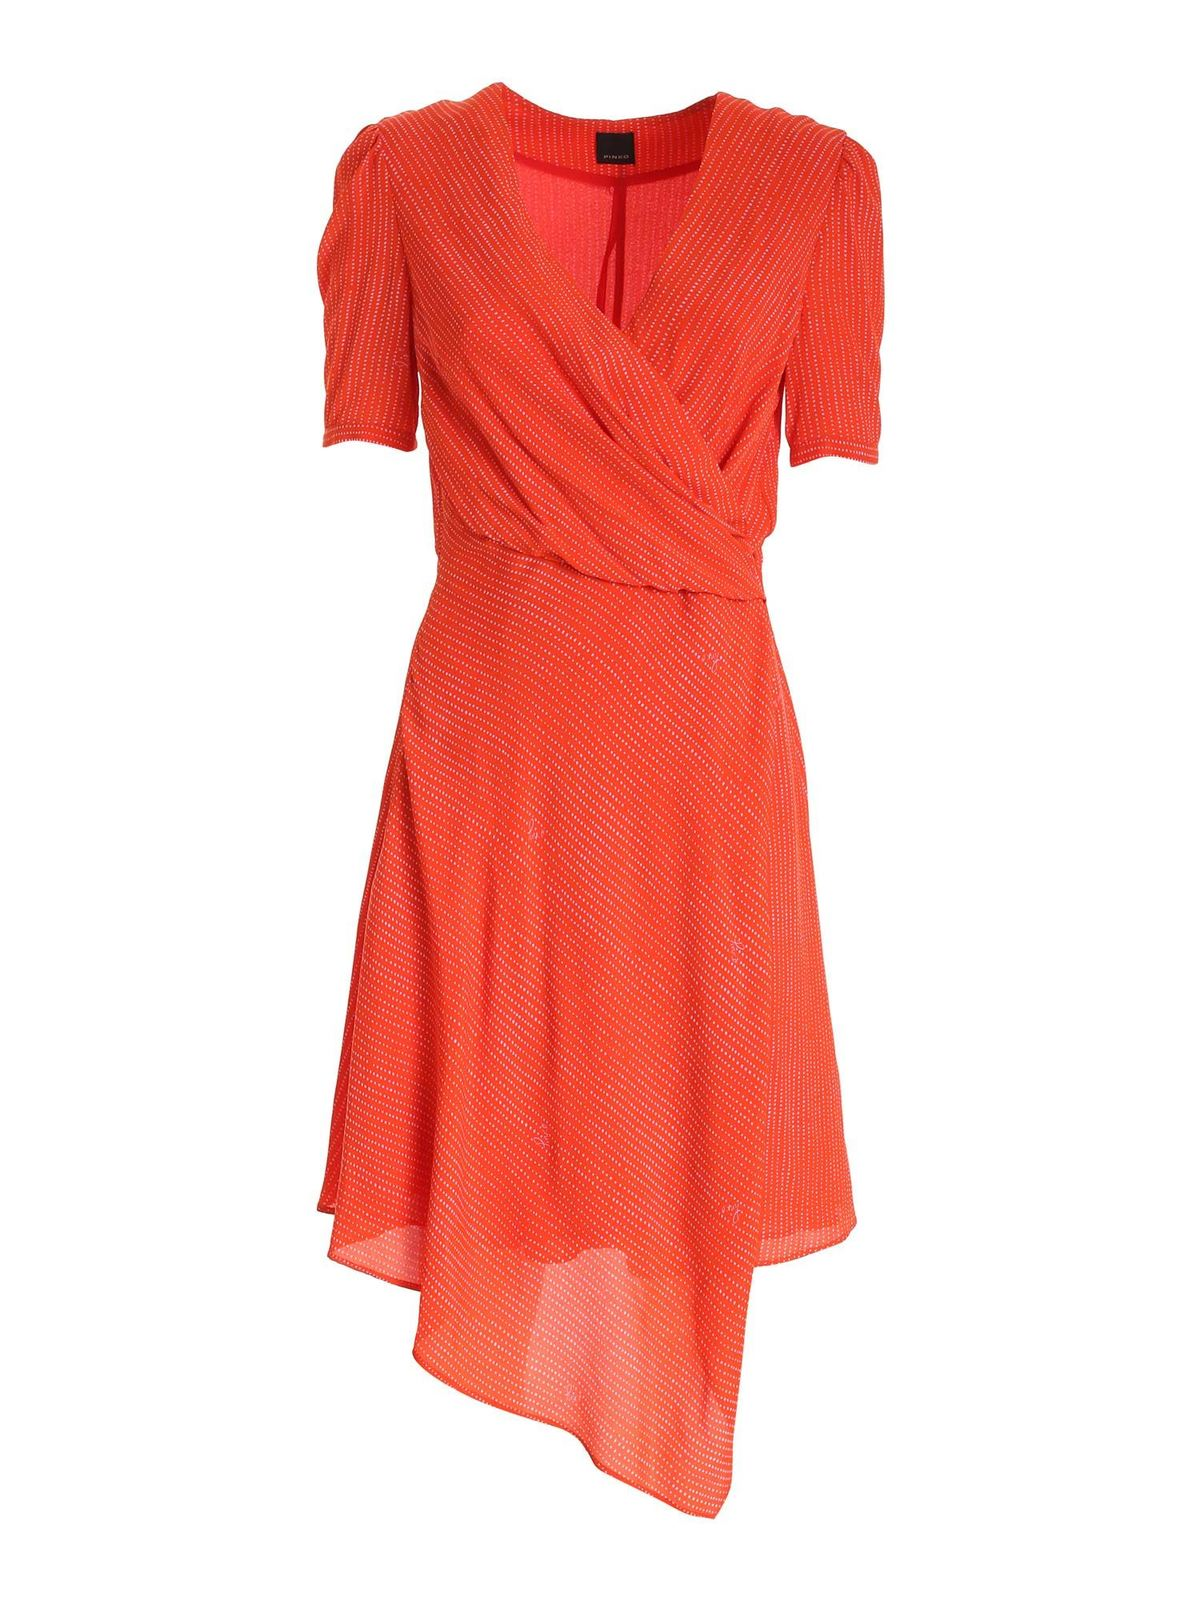 Pinko Dresses MAGIO DRESS IN CORAL RED